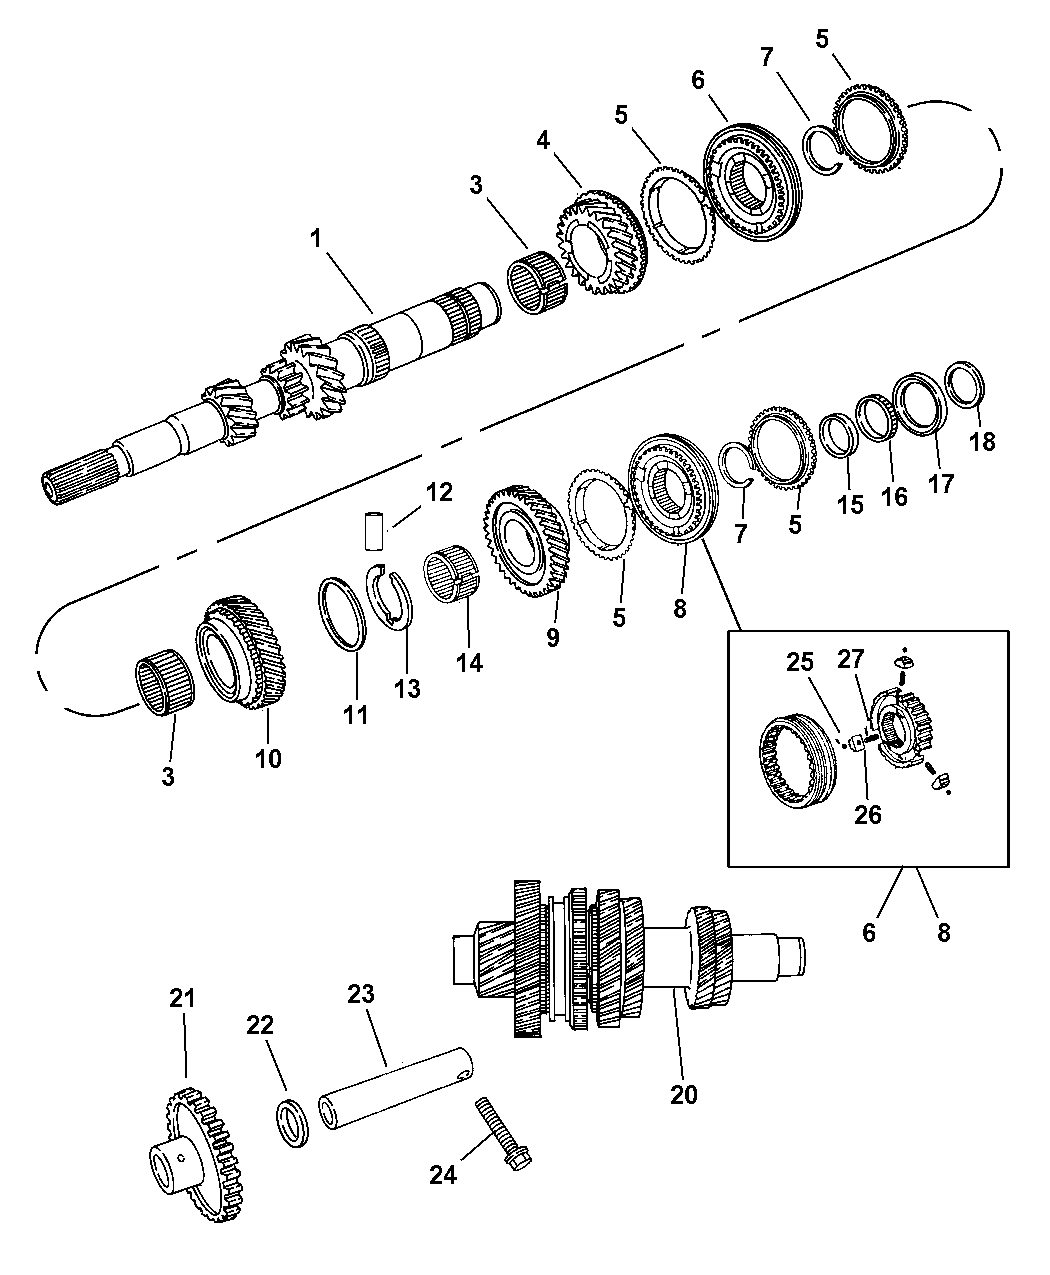 2004 Dodge Neon Gear Train of Manual Transmission